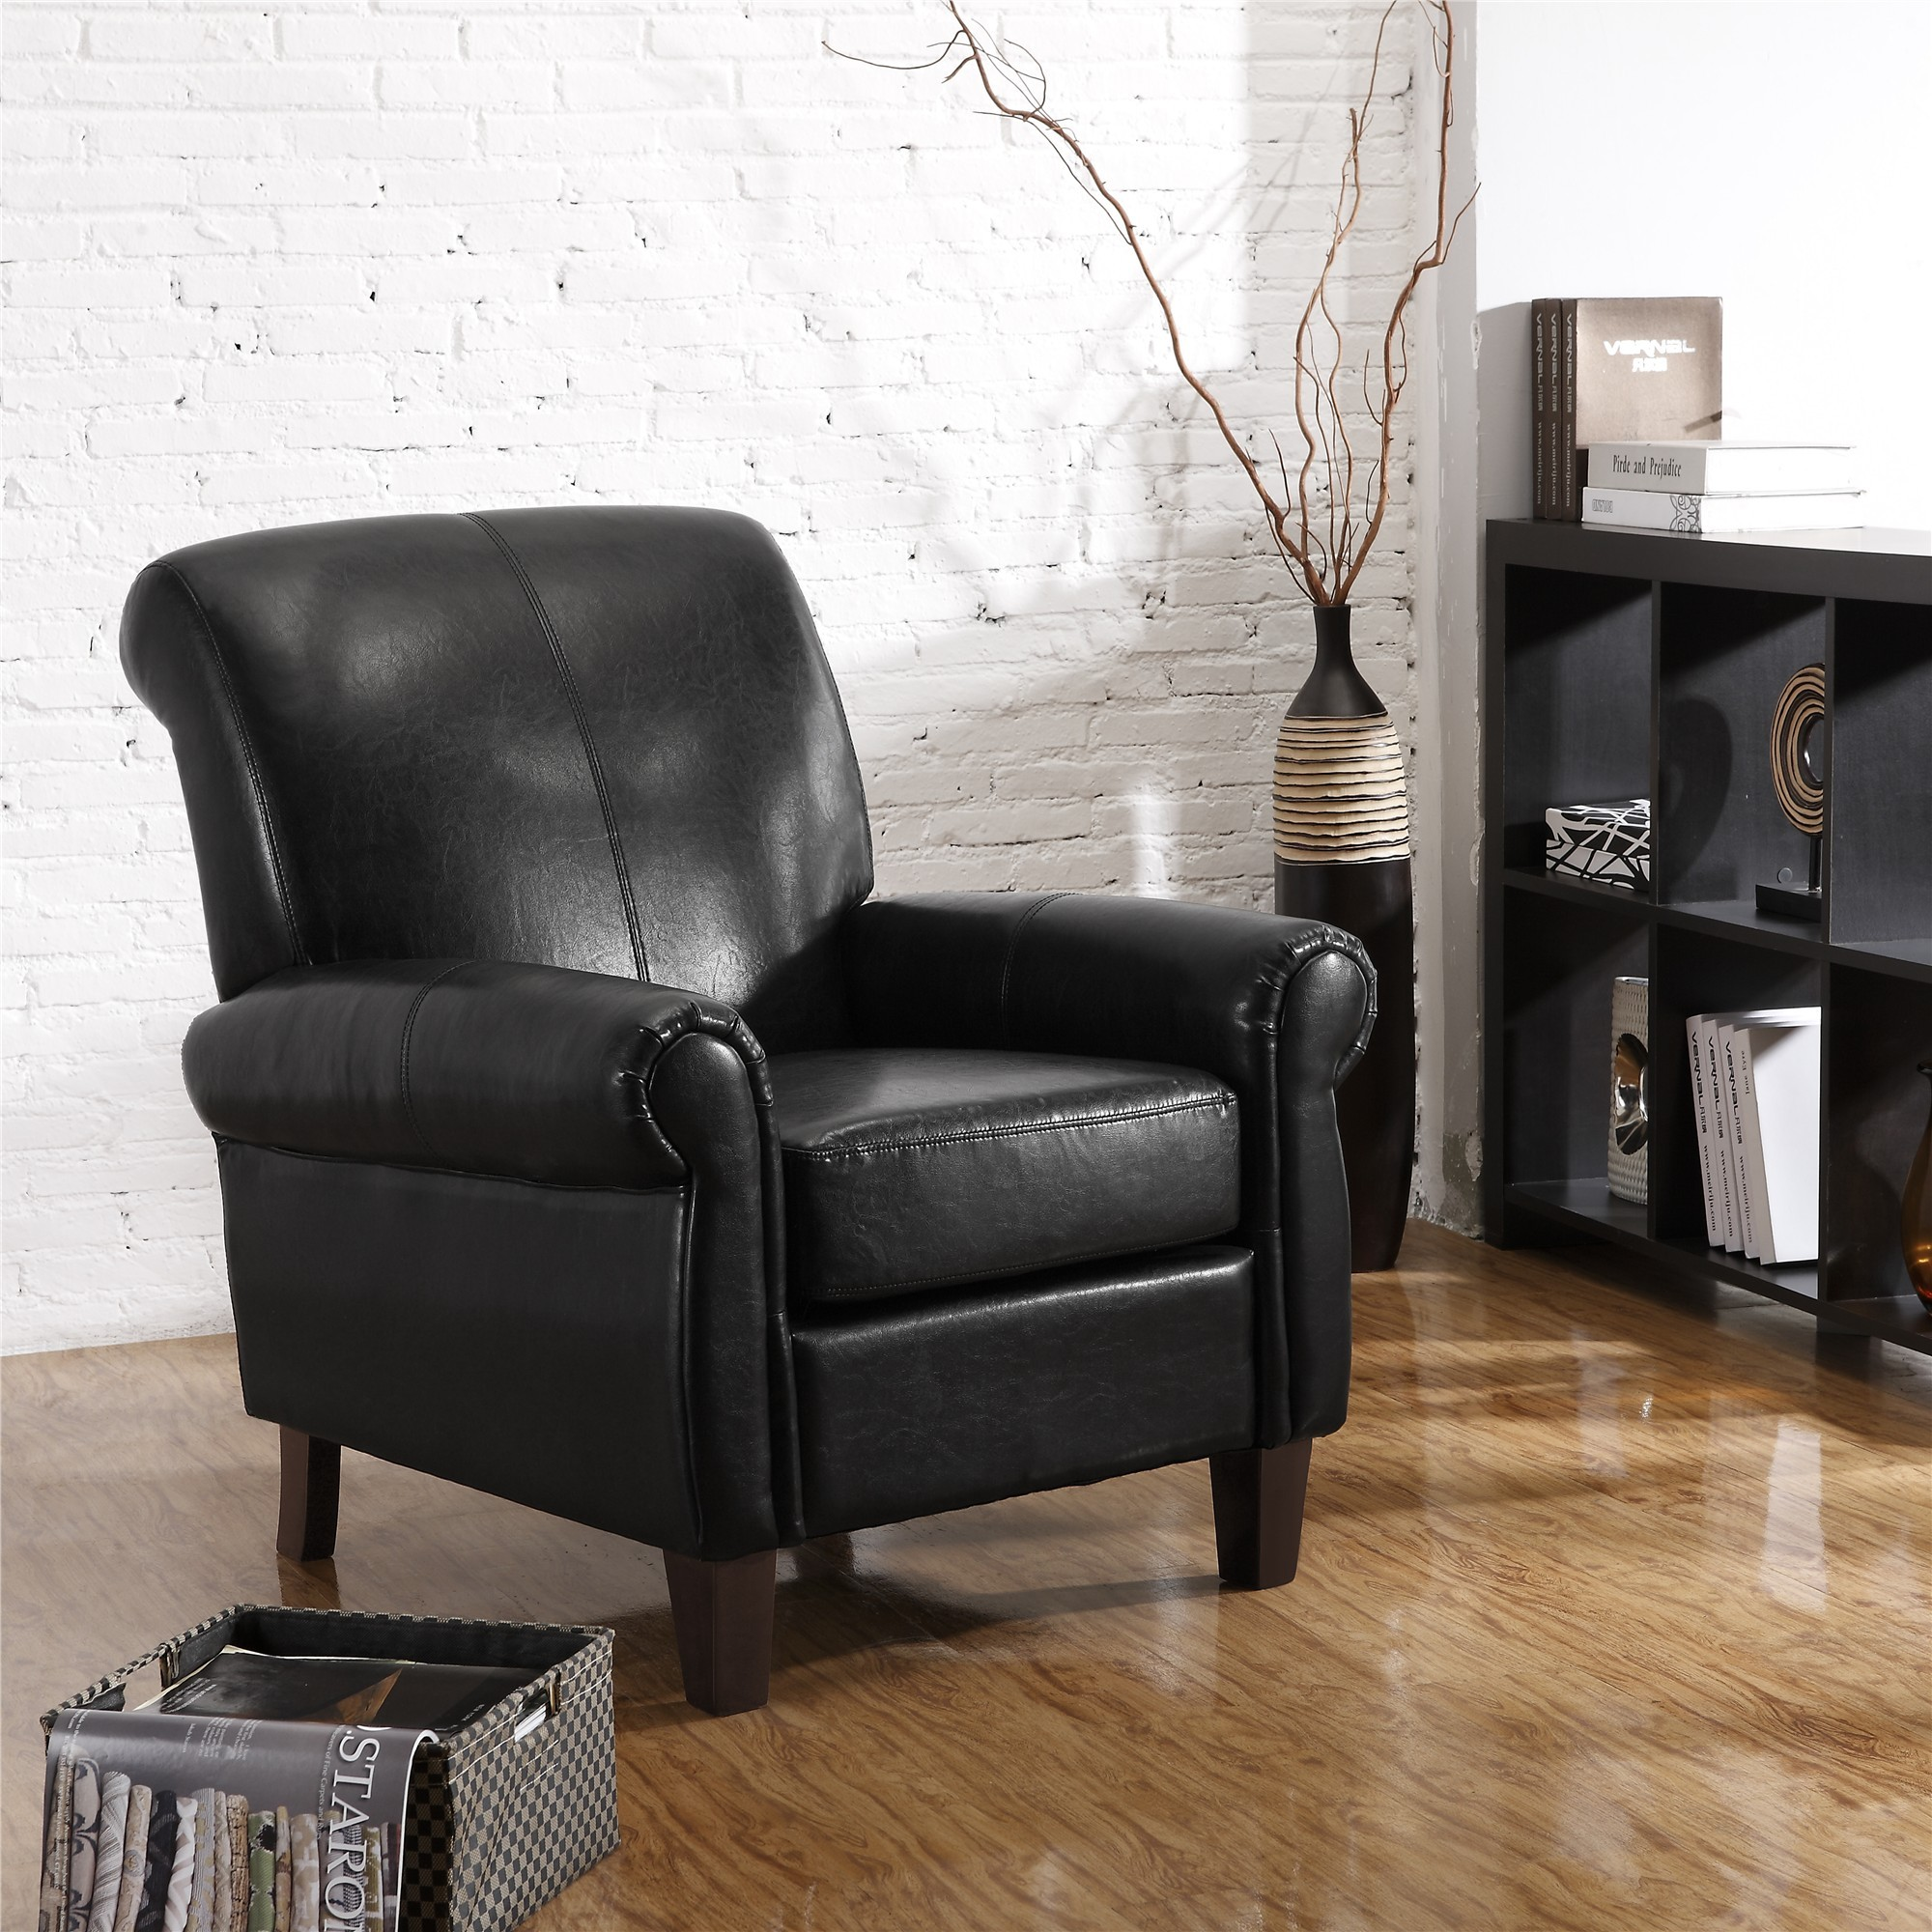 Important Tips for Buying a Leather Club Chair